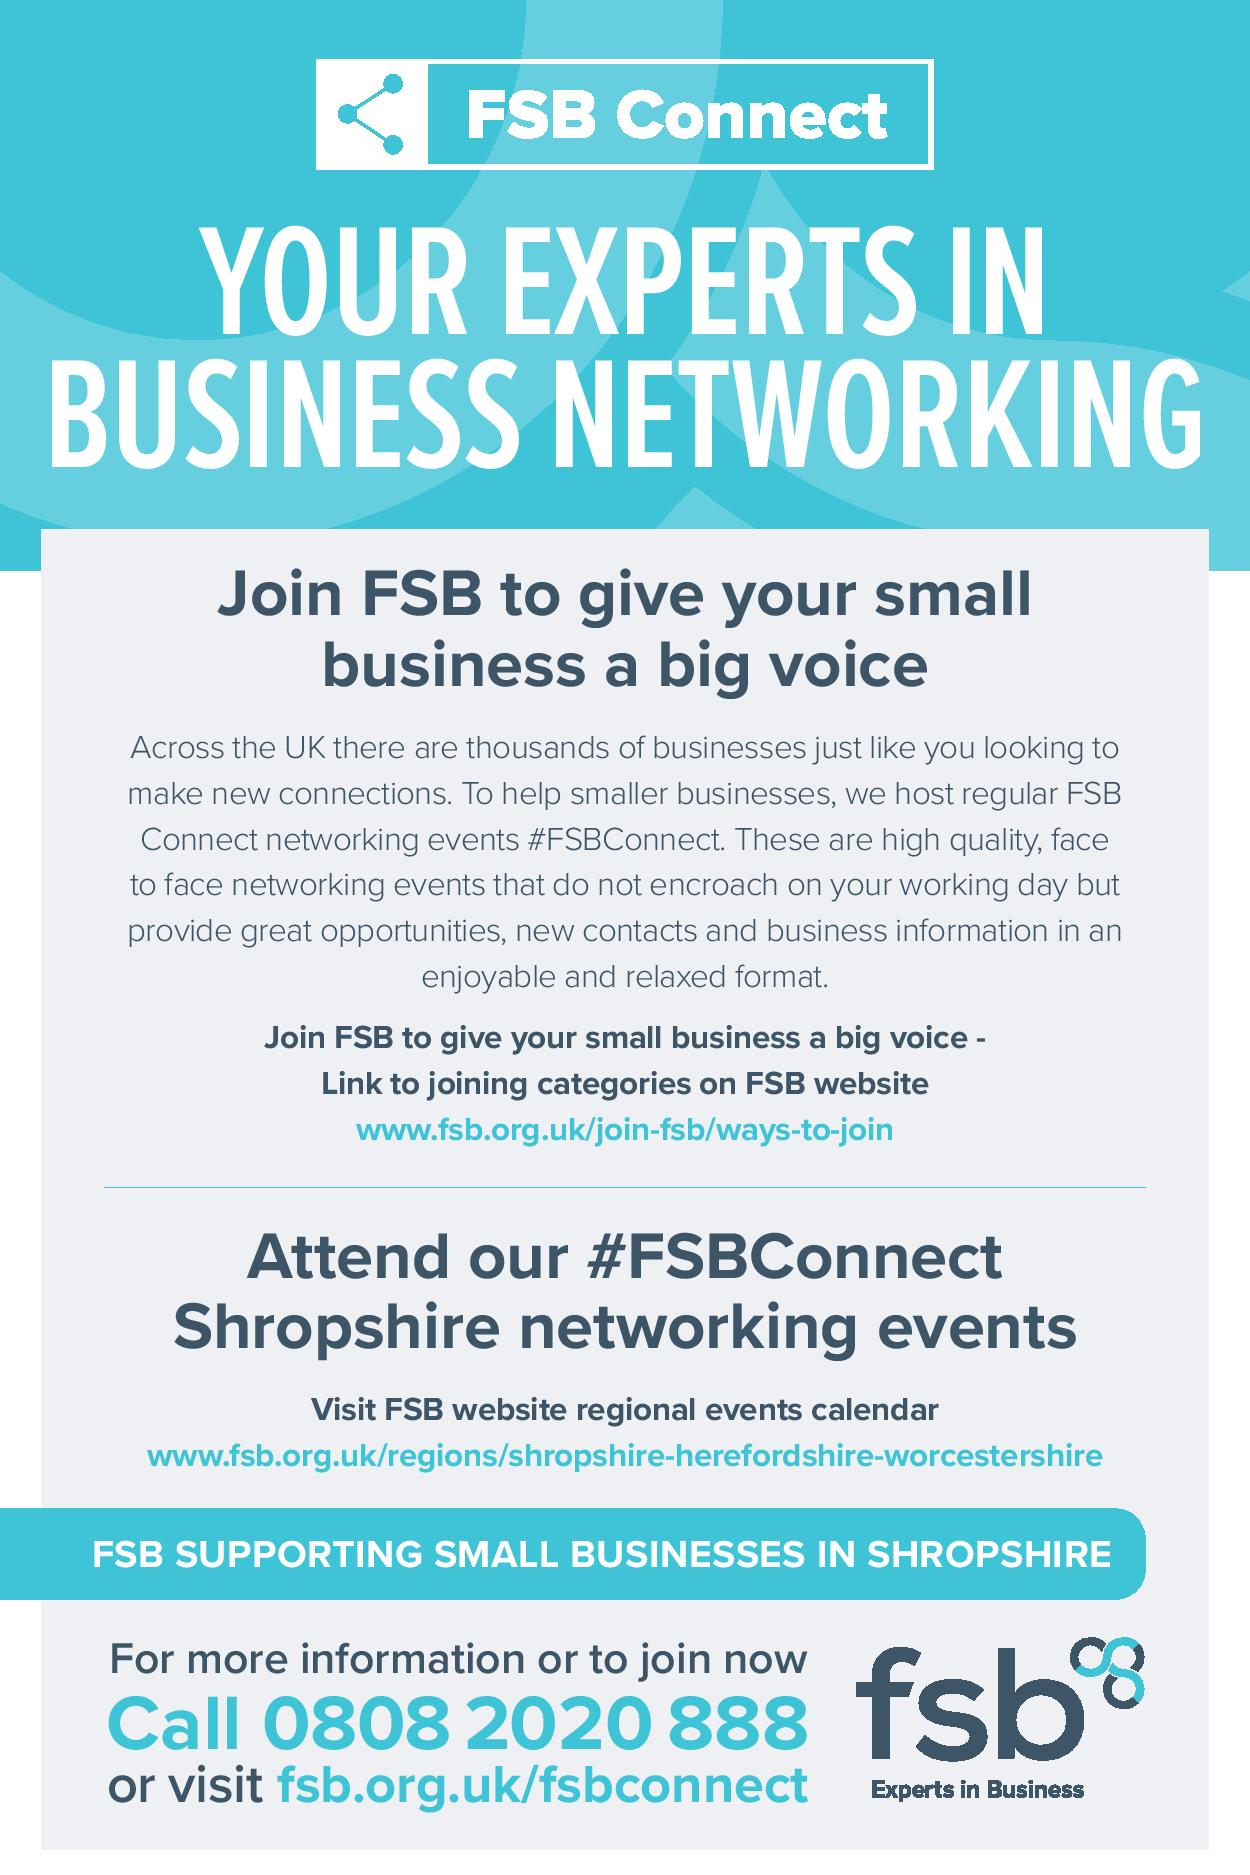 http://www.fsb.org.uk/regions/shropshire-herefordshire-worcestershire